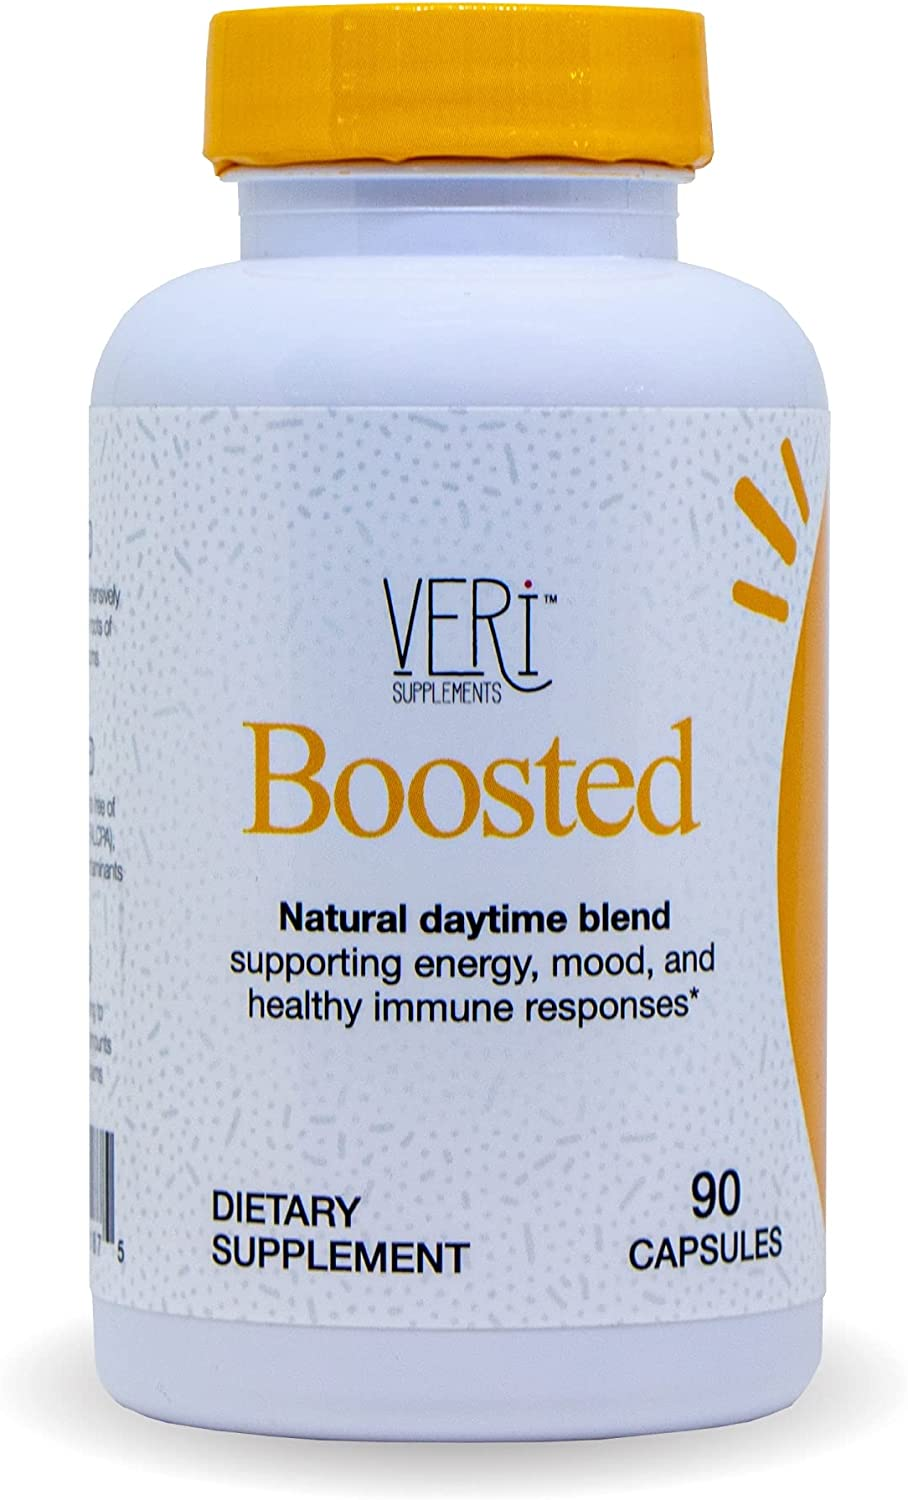 Veri Weekly update Boosted Natural Daily bargain sale Immune Supplement Vegan Free Gluten L-Ty